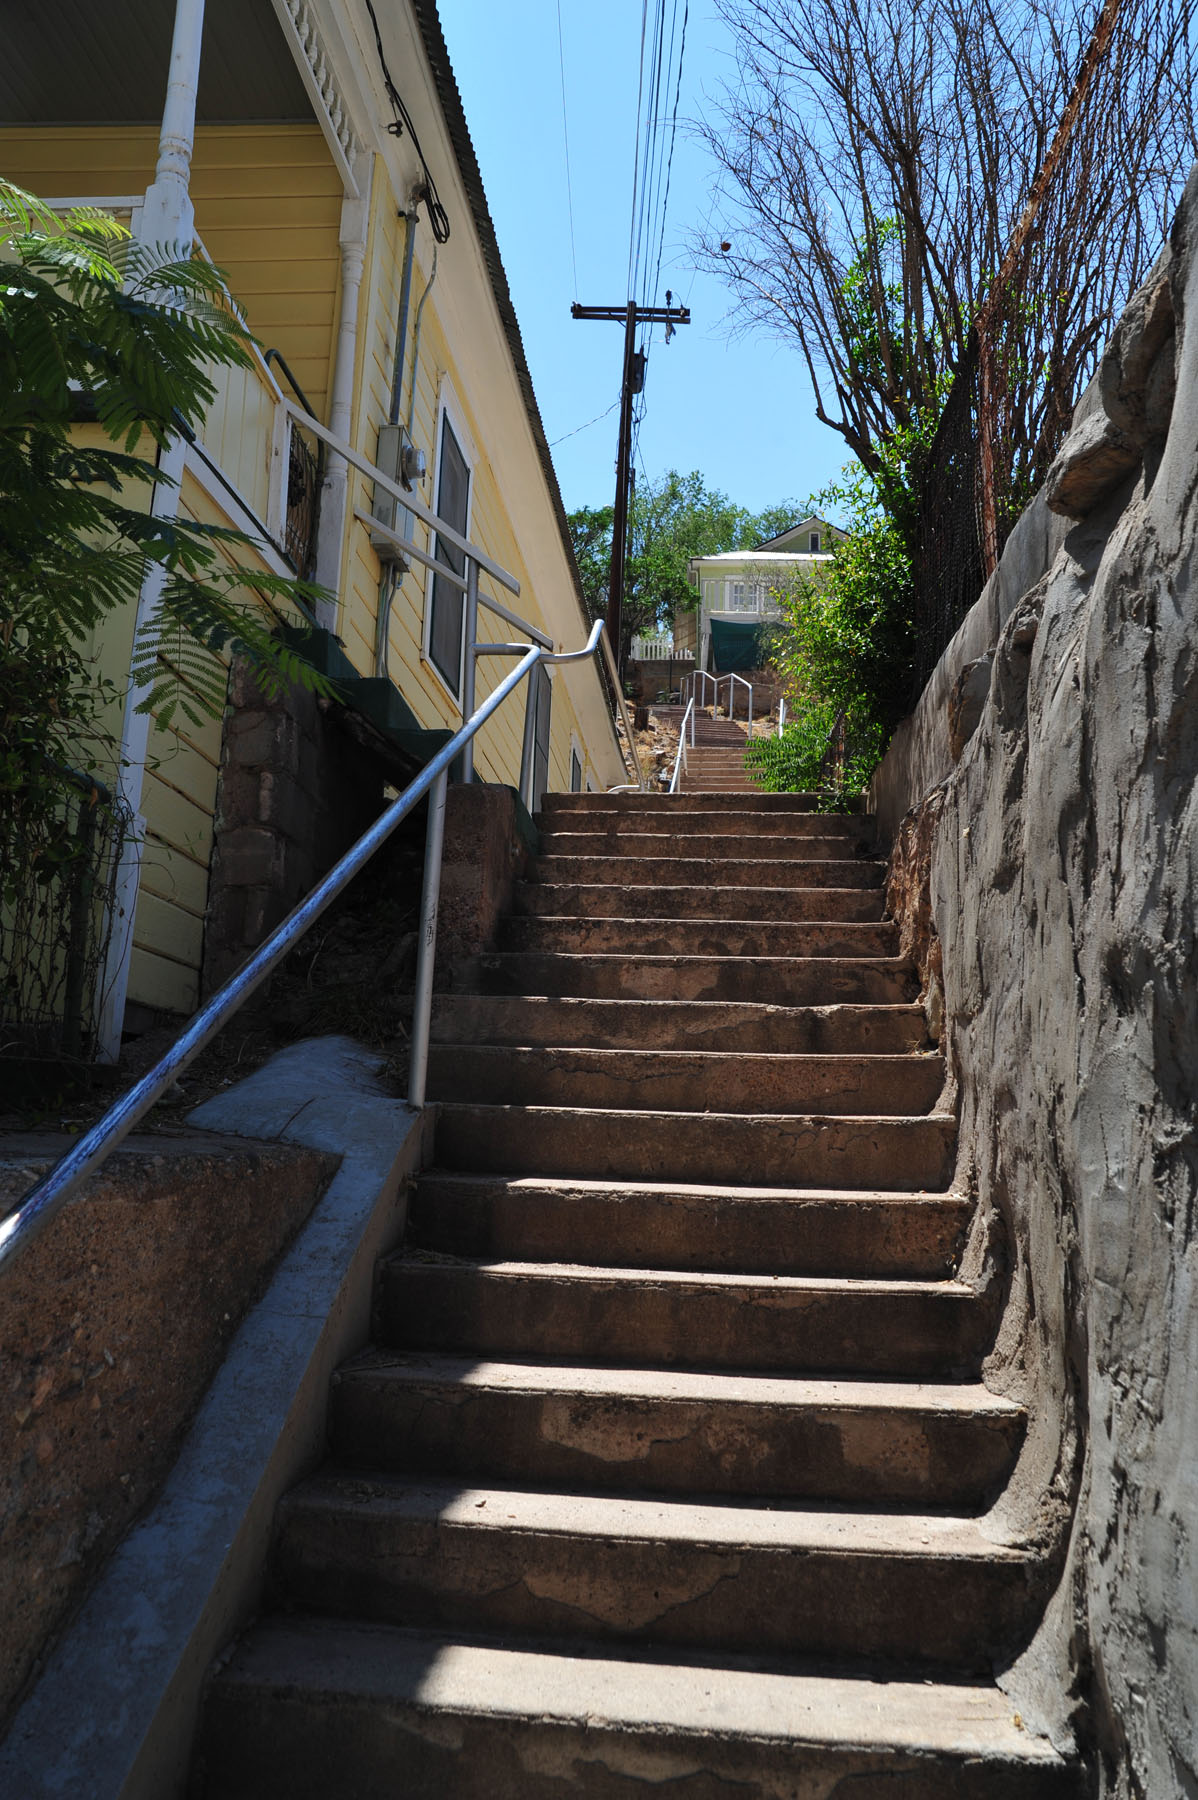 Bisbee 1000 The Great Stairclimb Fundraiser Review